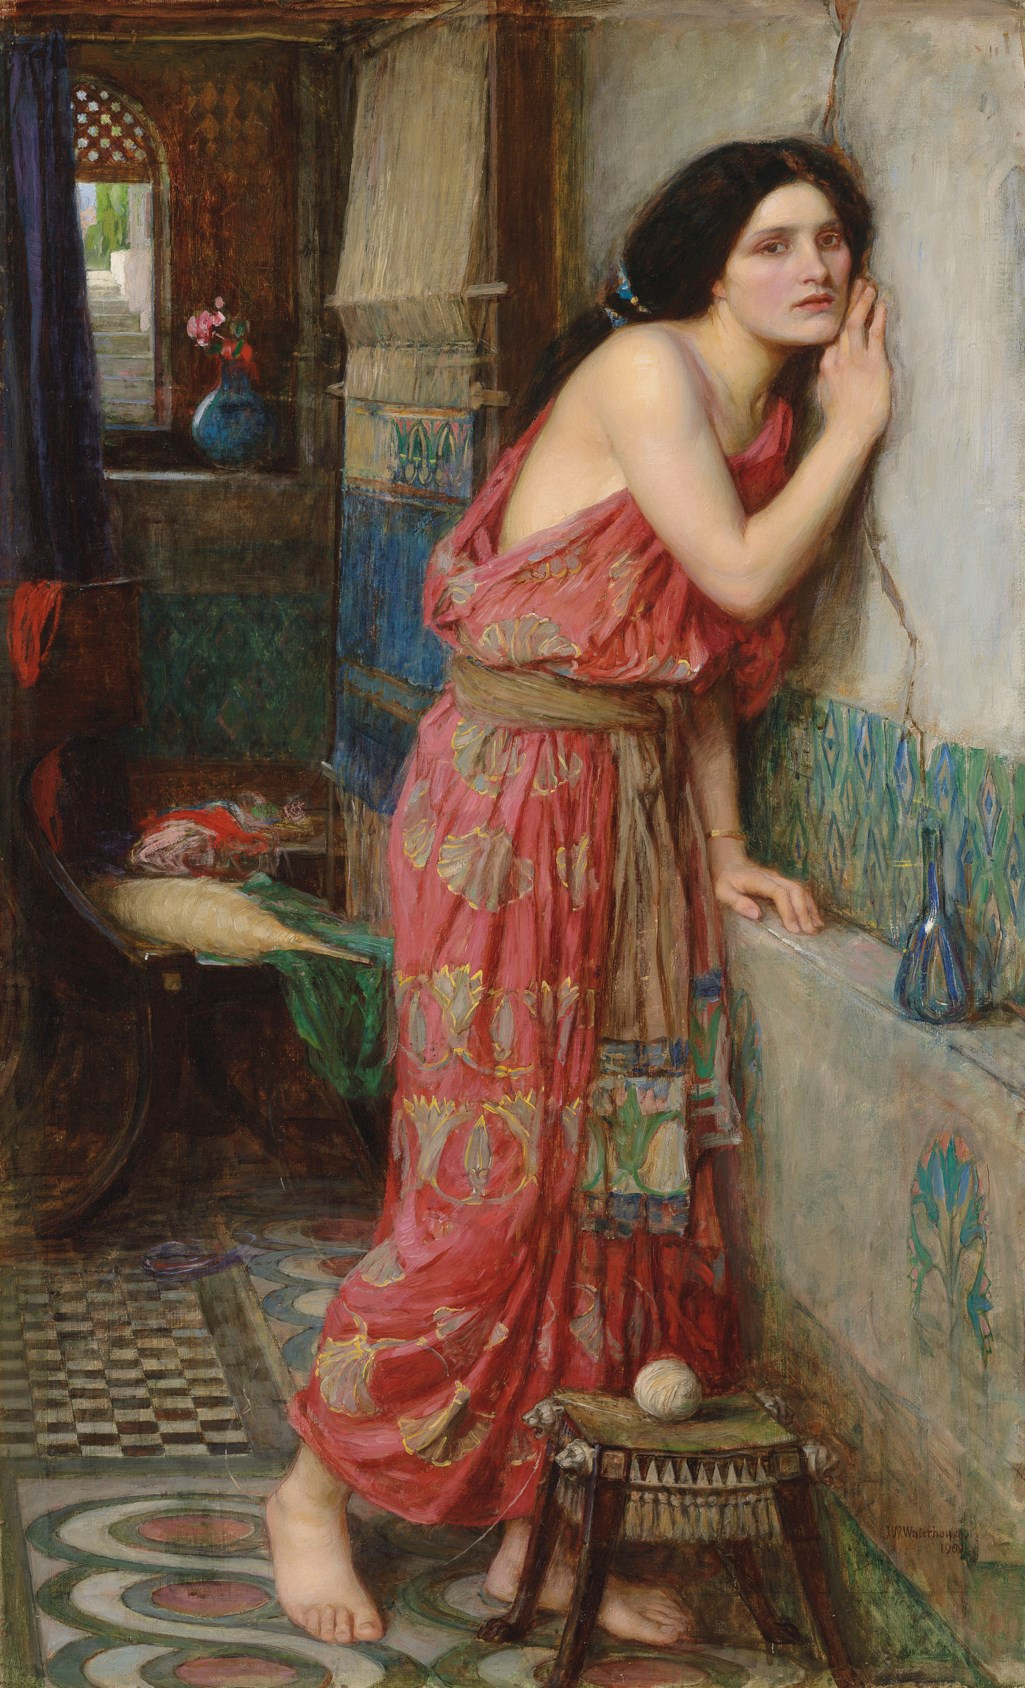 John William Waterhouse, R.A. (British, 1849-1917)